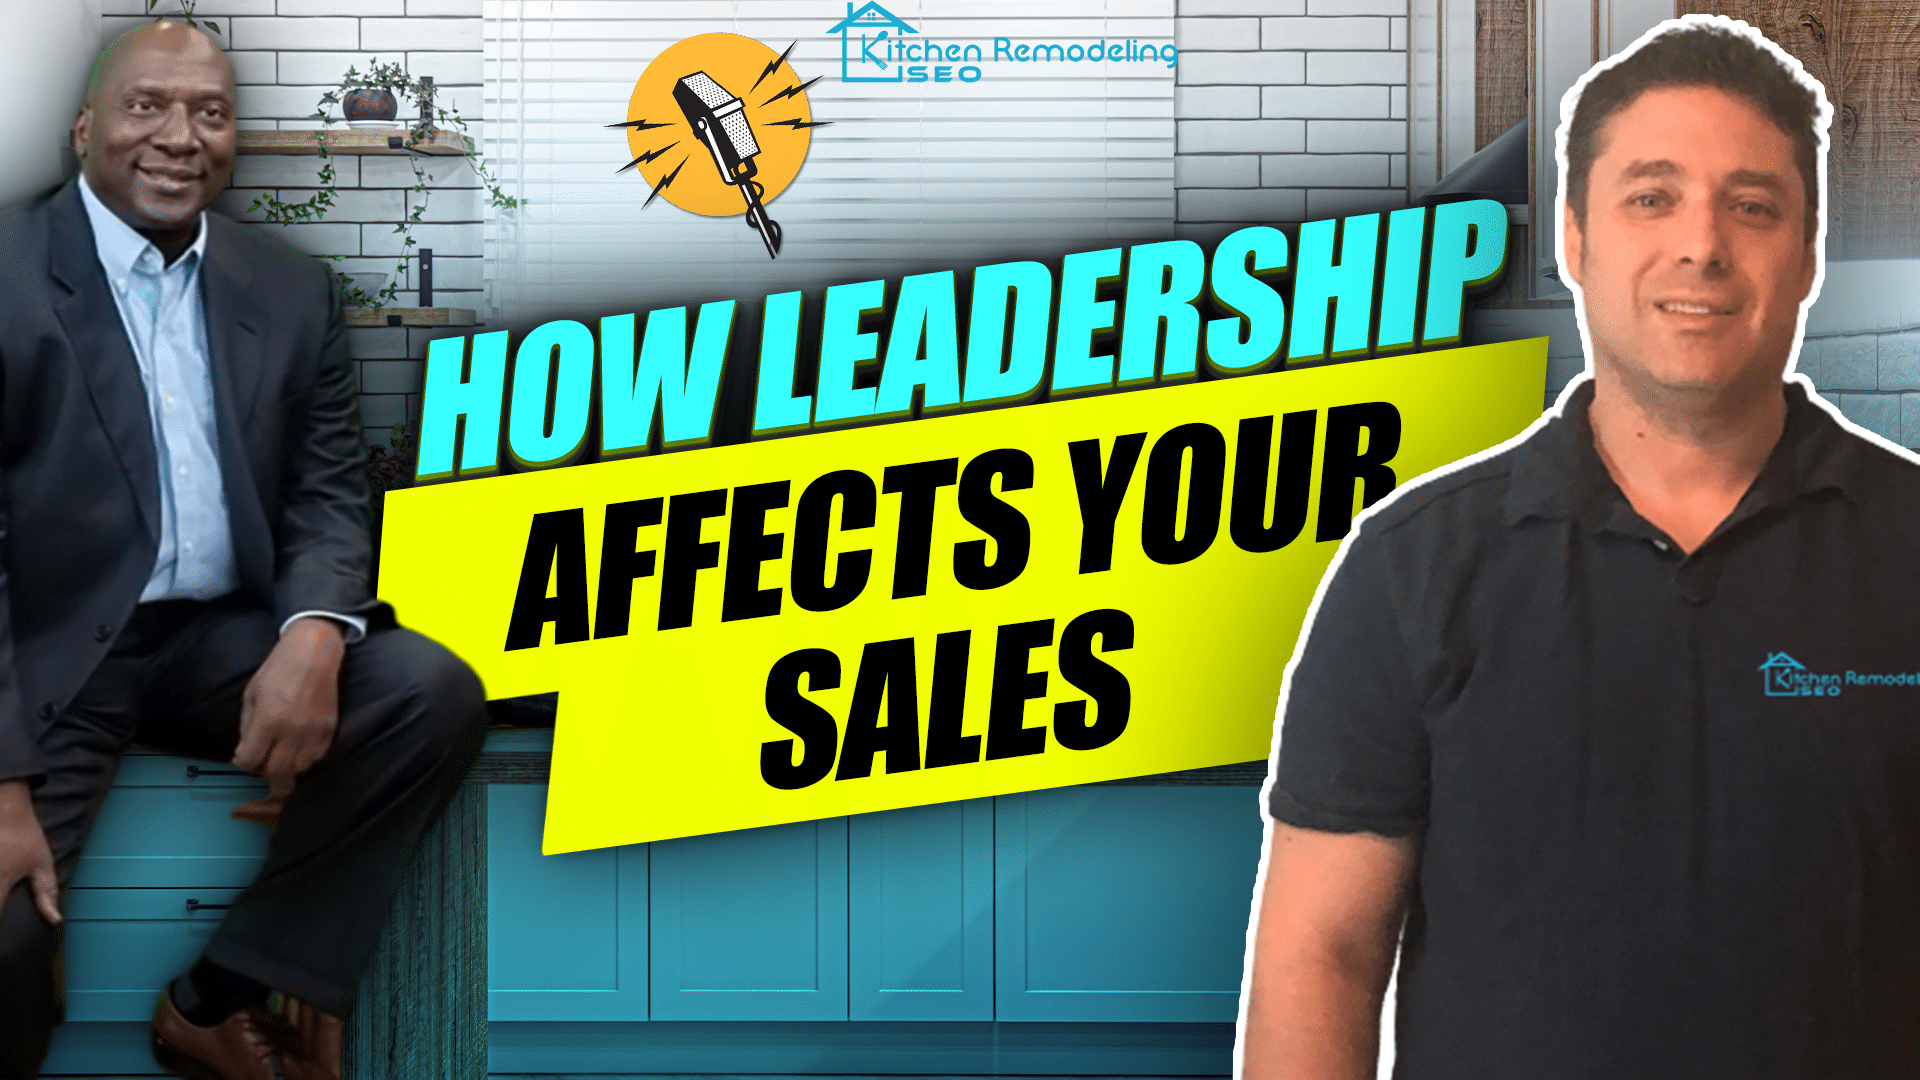 podcast cover about how leadership can improve sales